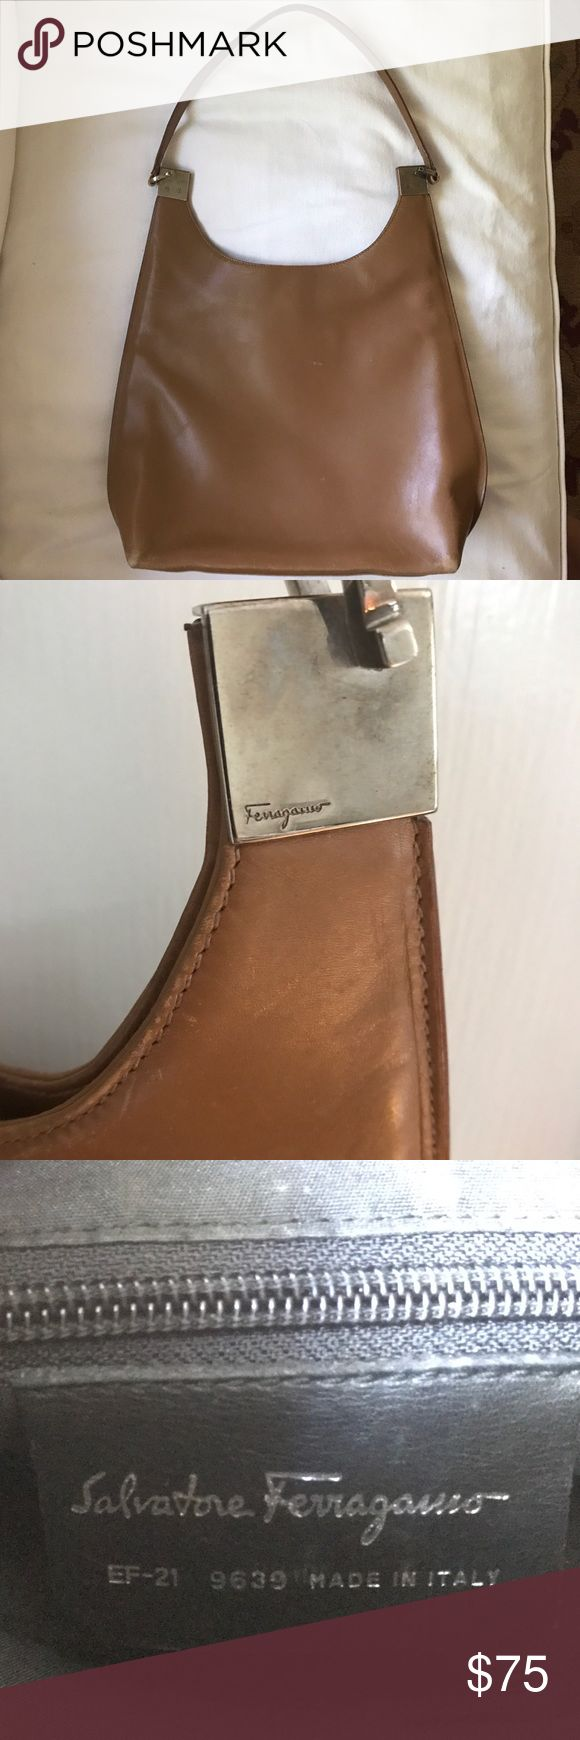 Salvatore Ferragamo Bag Tan neutral color. Used with some wear, see photos. Beautiful purse. Salvatore Ferragamo Bags Shoulder Bags